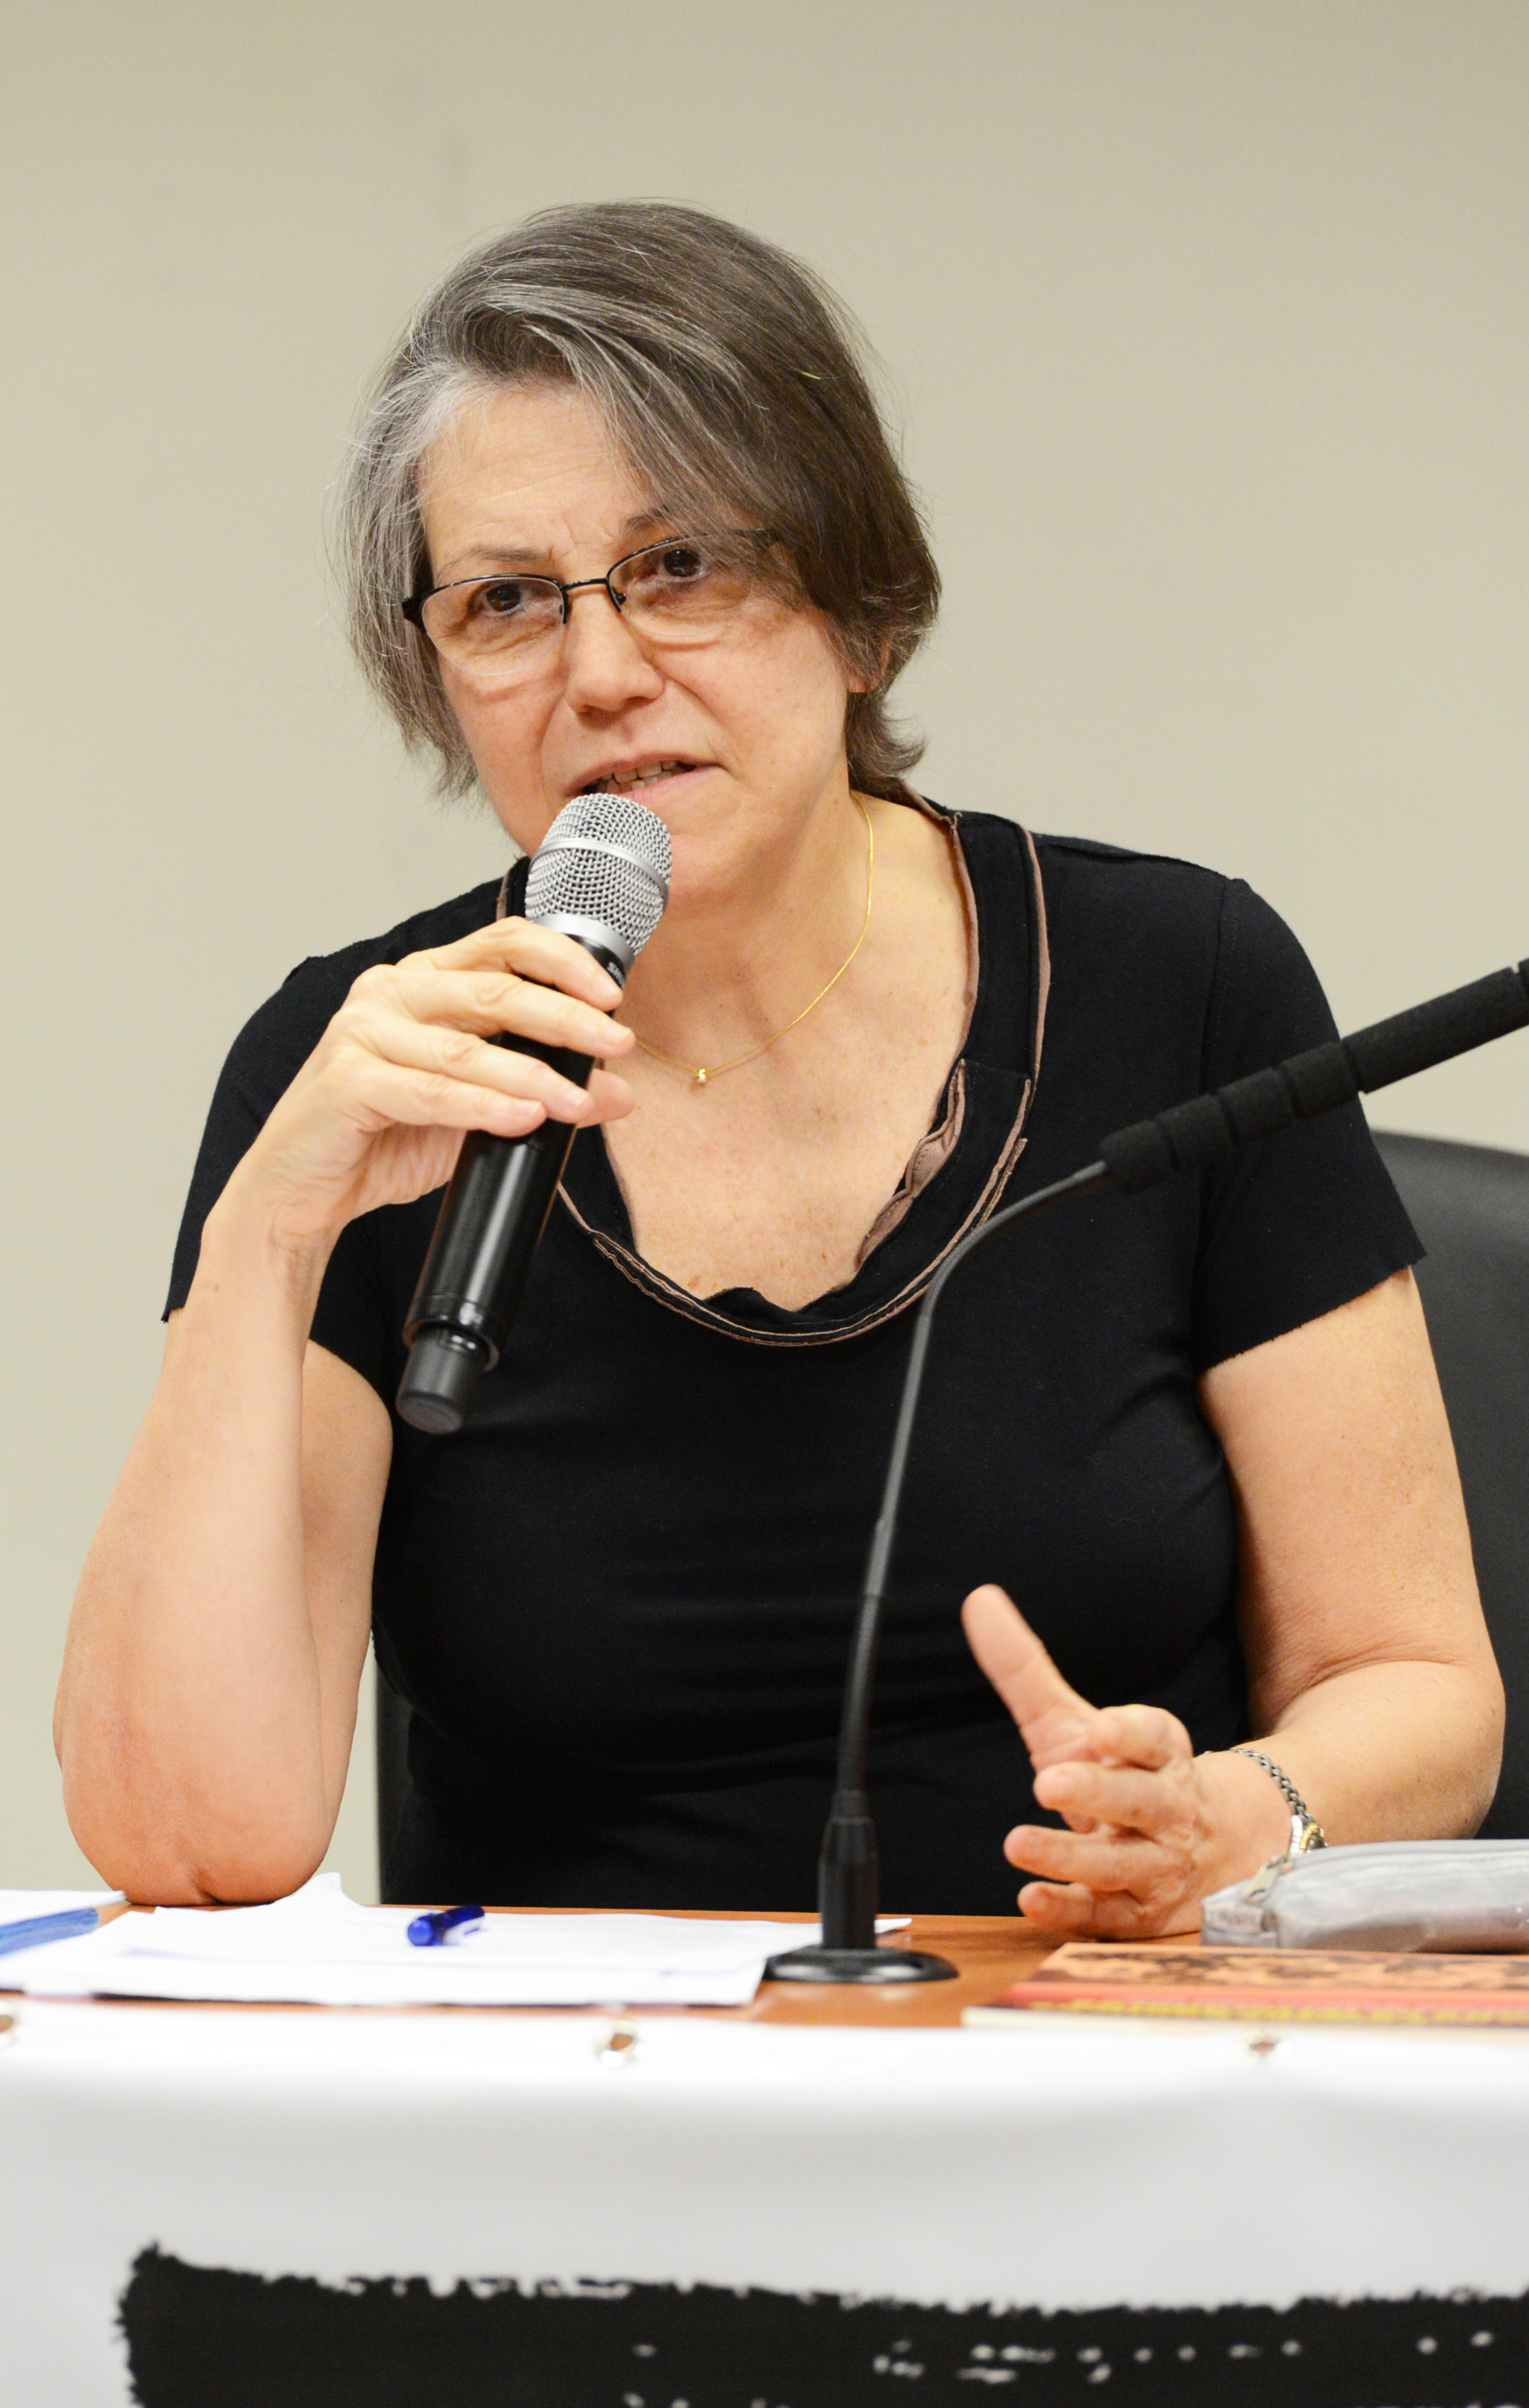 Janice Theodoro <a style='float:right' href='https://www3.al.sp.gov.br/repositorio/noticia/N-09-2014/fg165000.jpg' target=_blank><img src='/_img/material-file-download-white.png' width='14px' alt='Clique para baixar a imagem'></a>